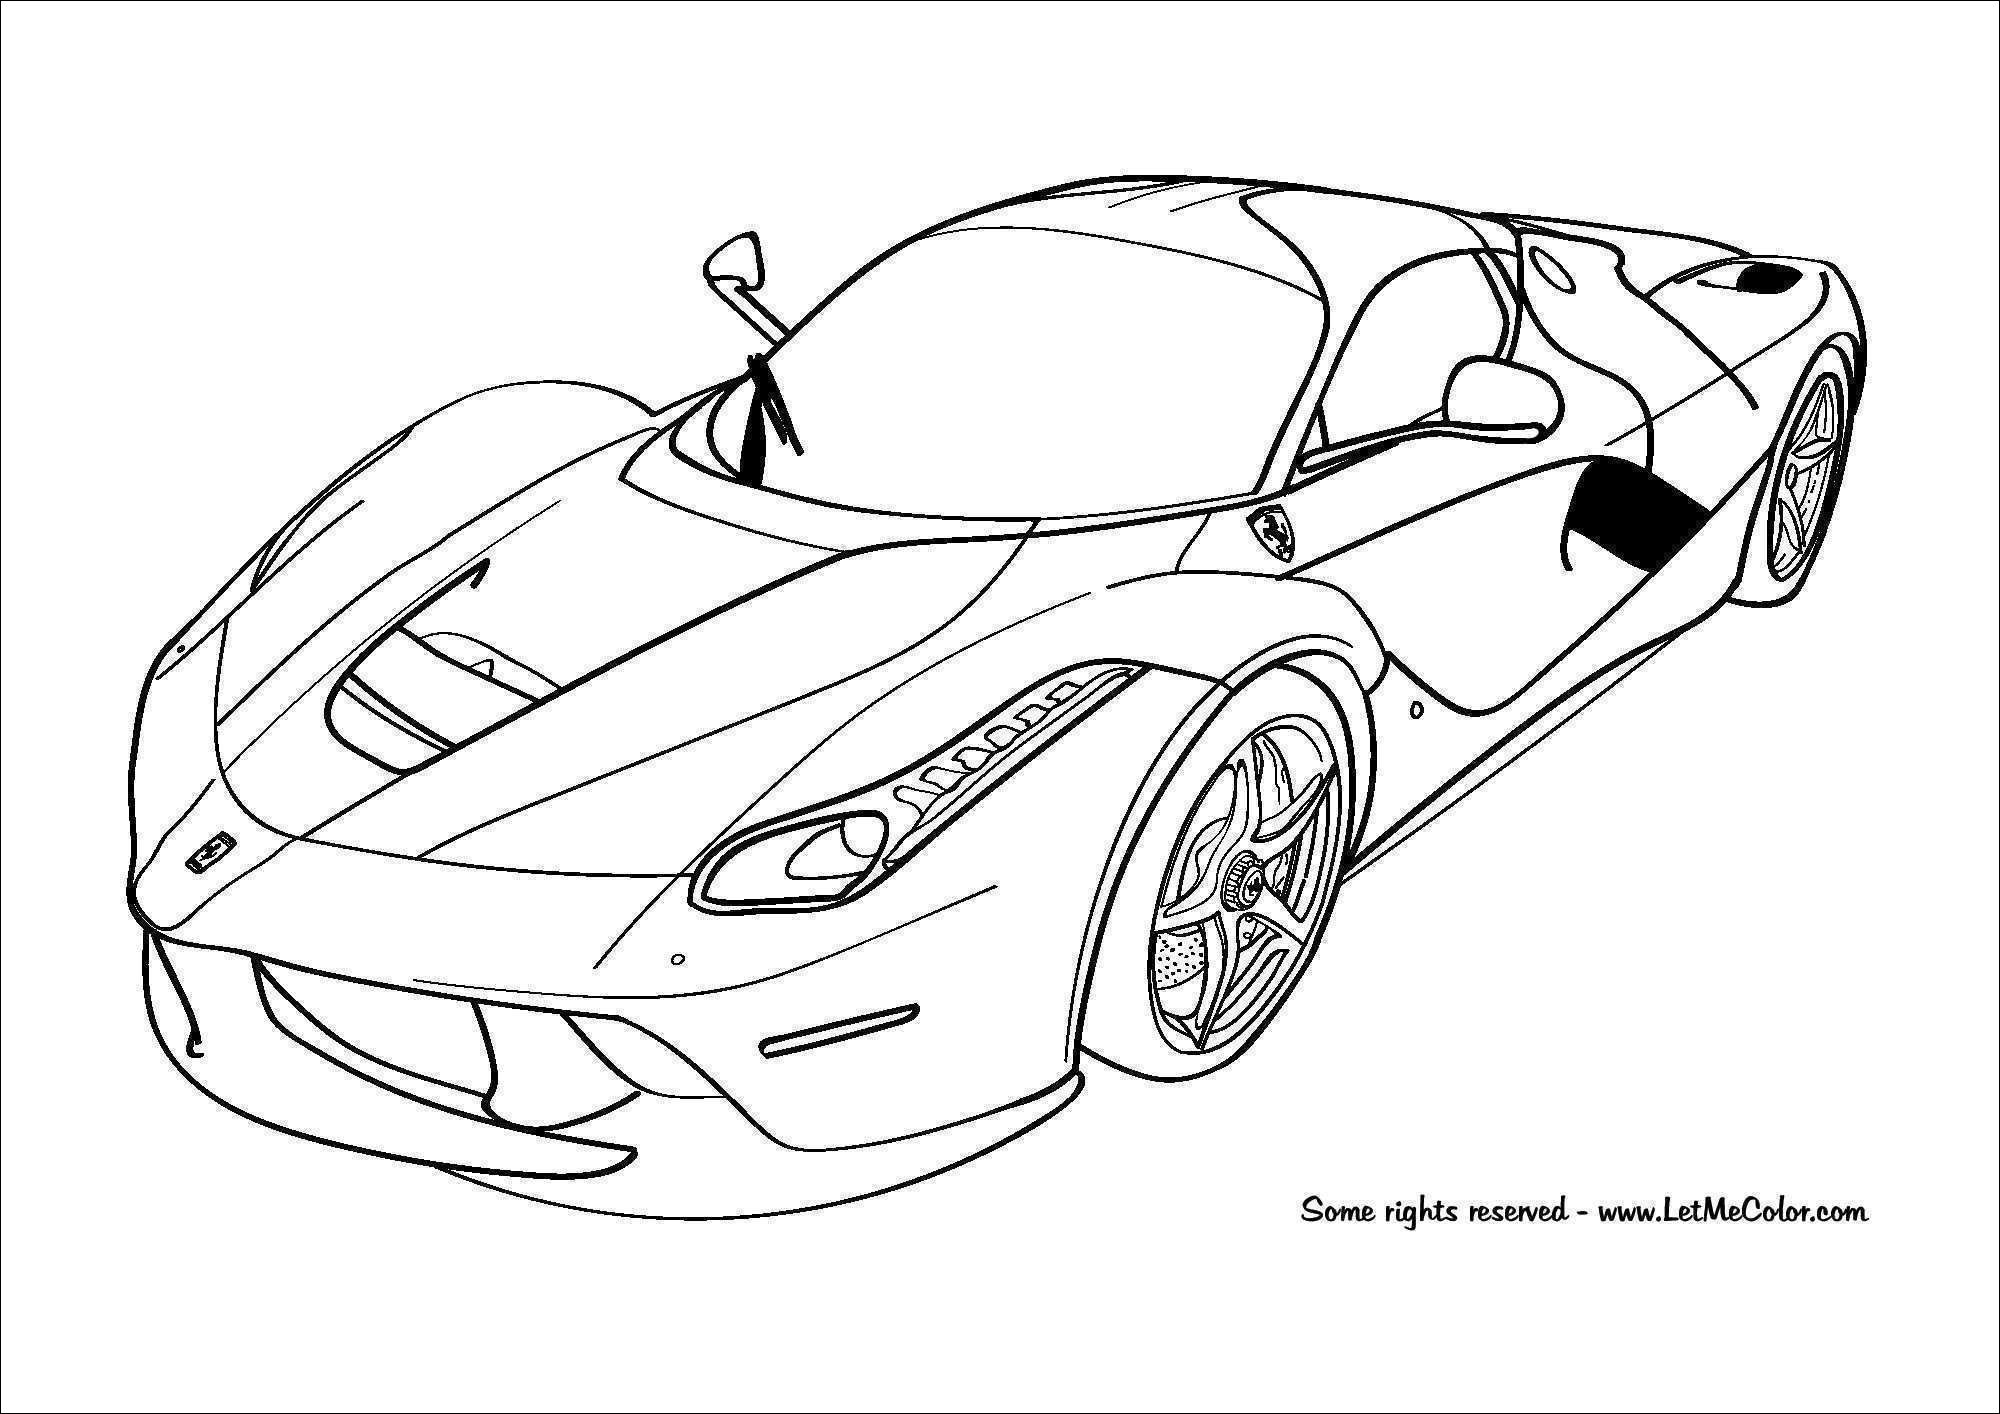 22 Antique Coloriage Fast And Furious Image En 2020 Voiture Coloriage Coloriage Image Coloriage